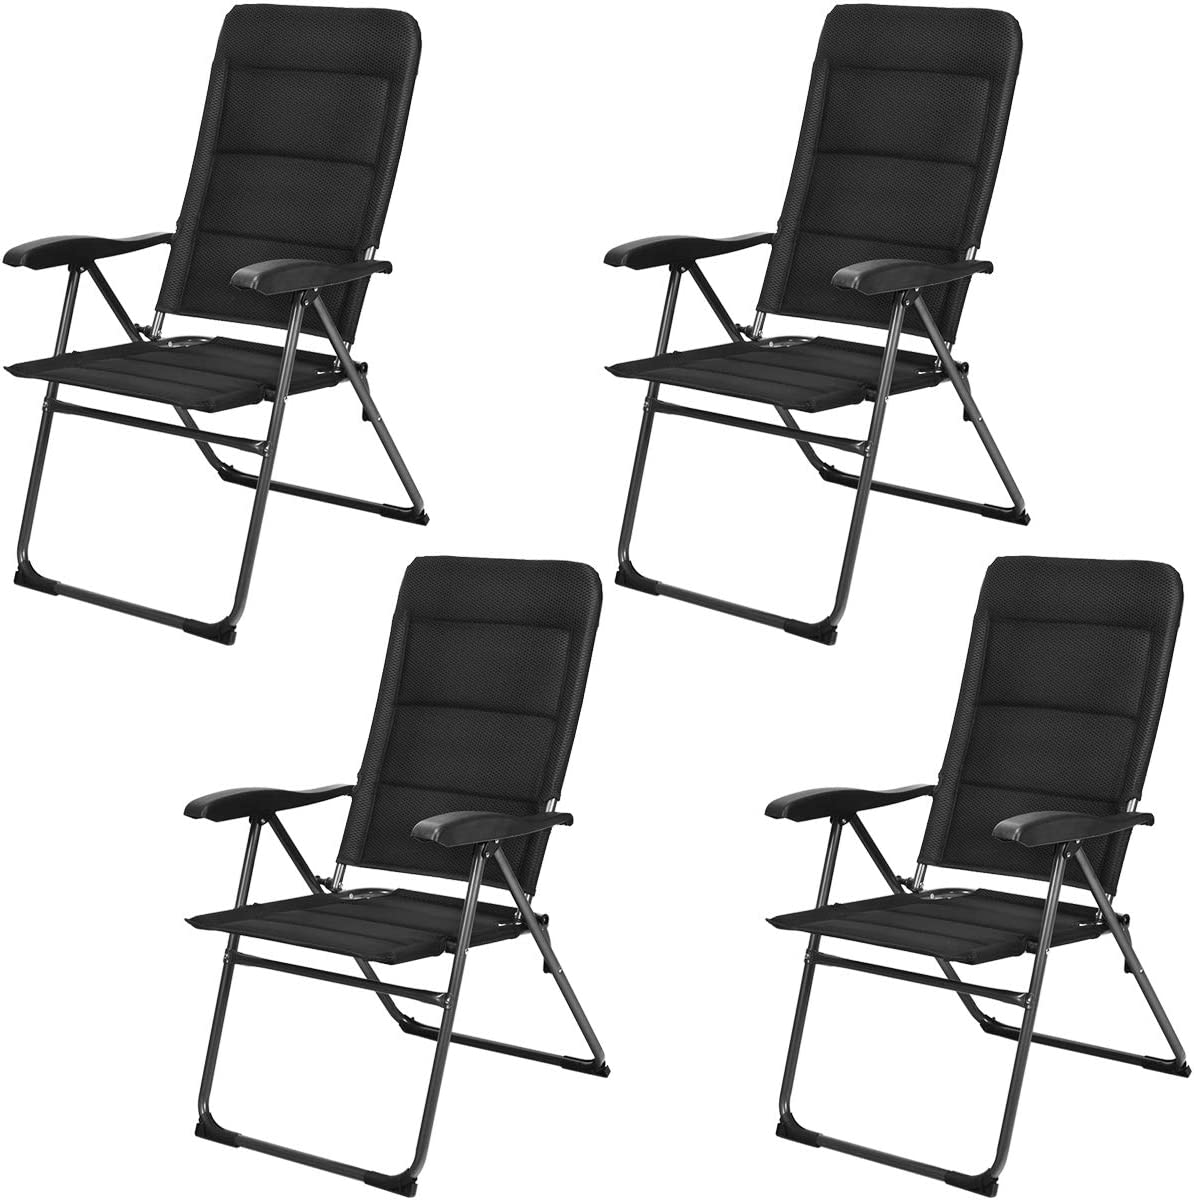 Giantex Set of 4 Patio Adjustable Ba Ranking TOP17 Special sale item Folding Chairs with